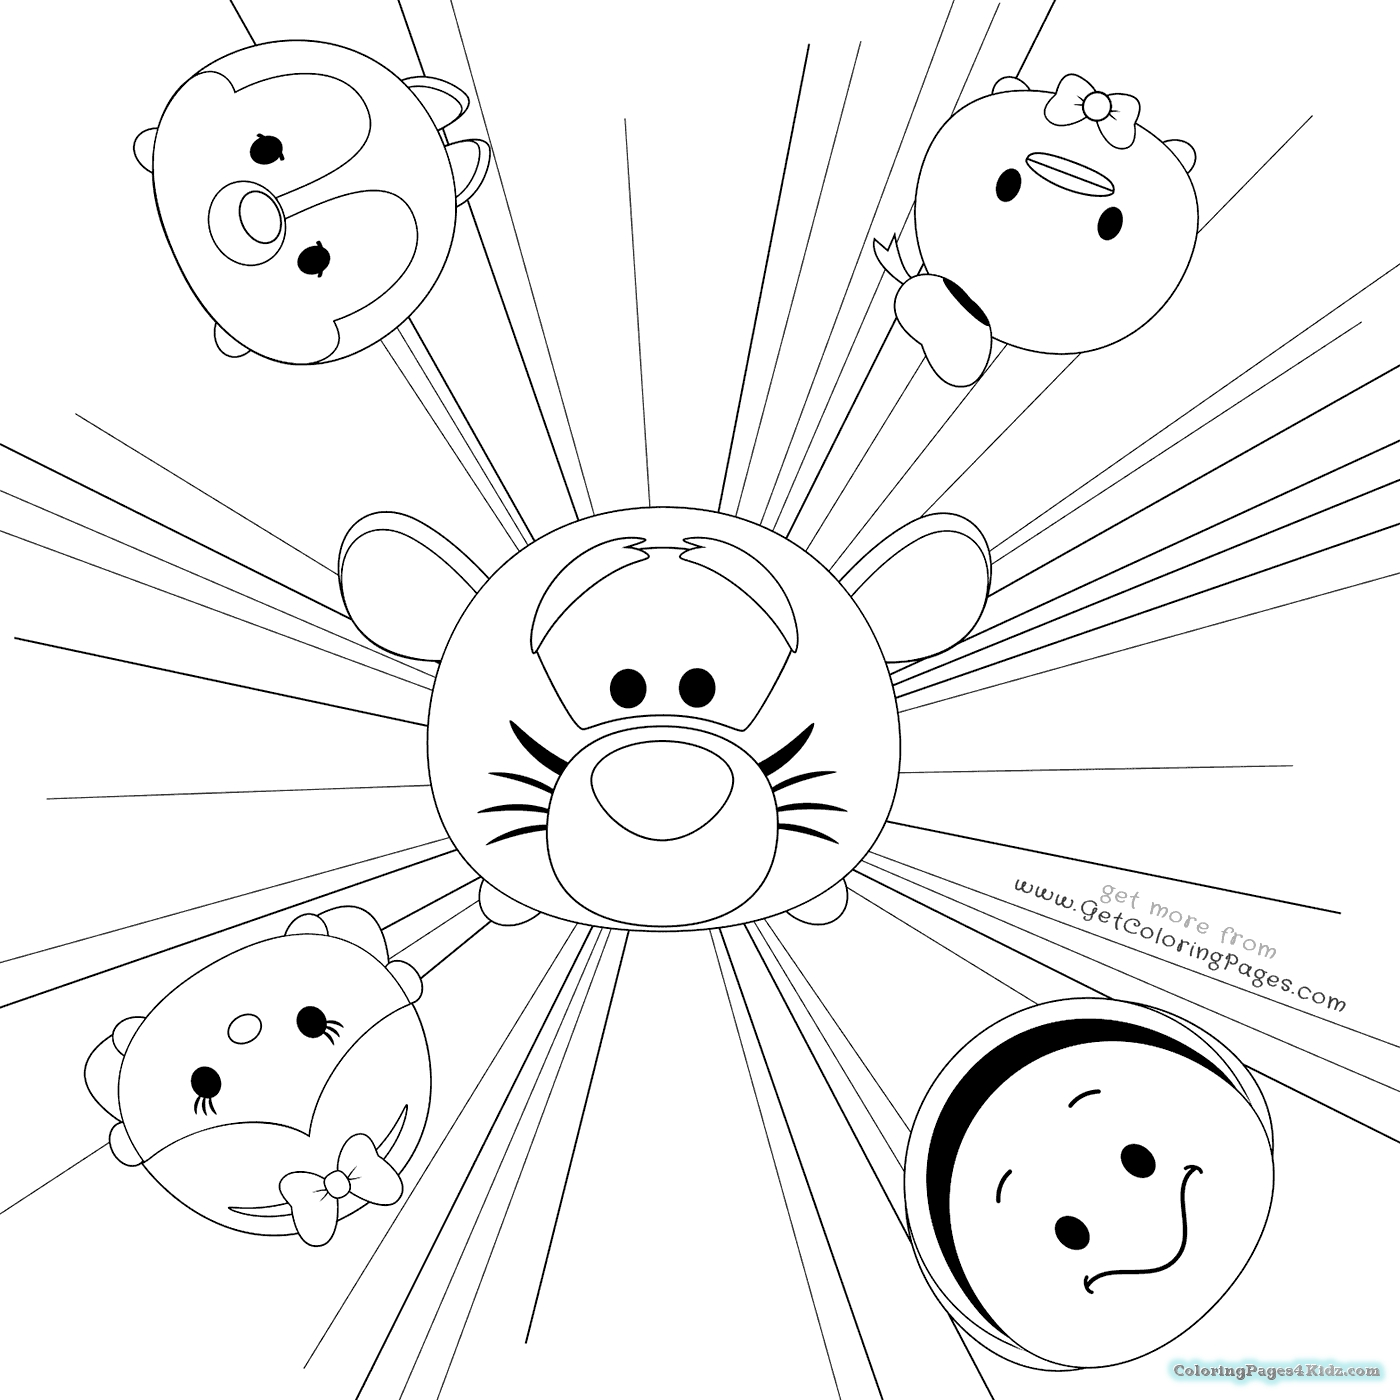 1400x1400 Disney Tsum Tsum Coloring Pages Black And White Collection Free